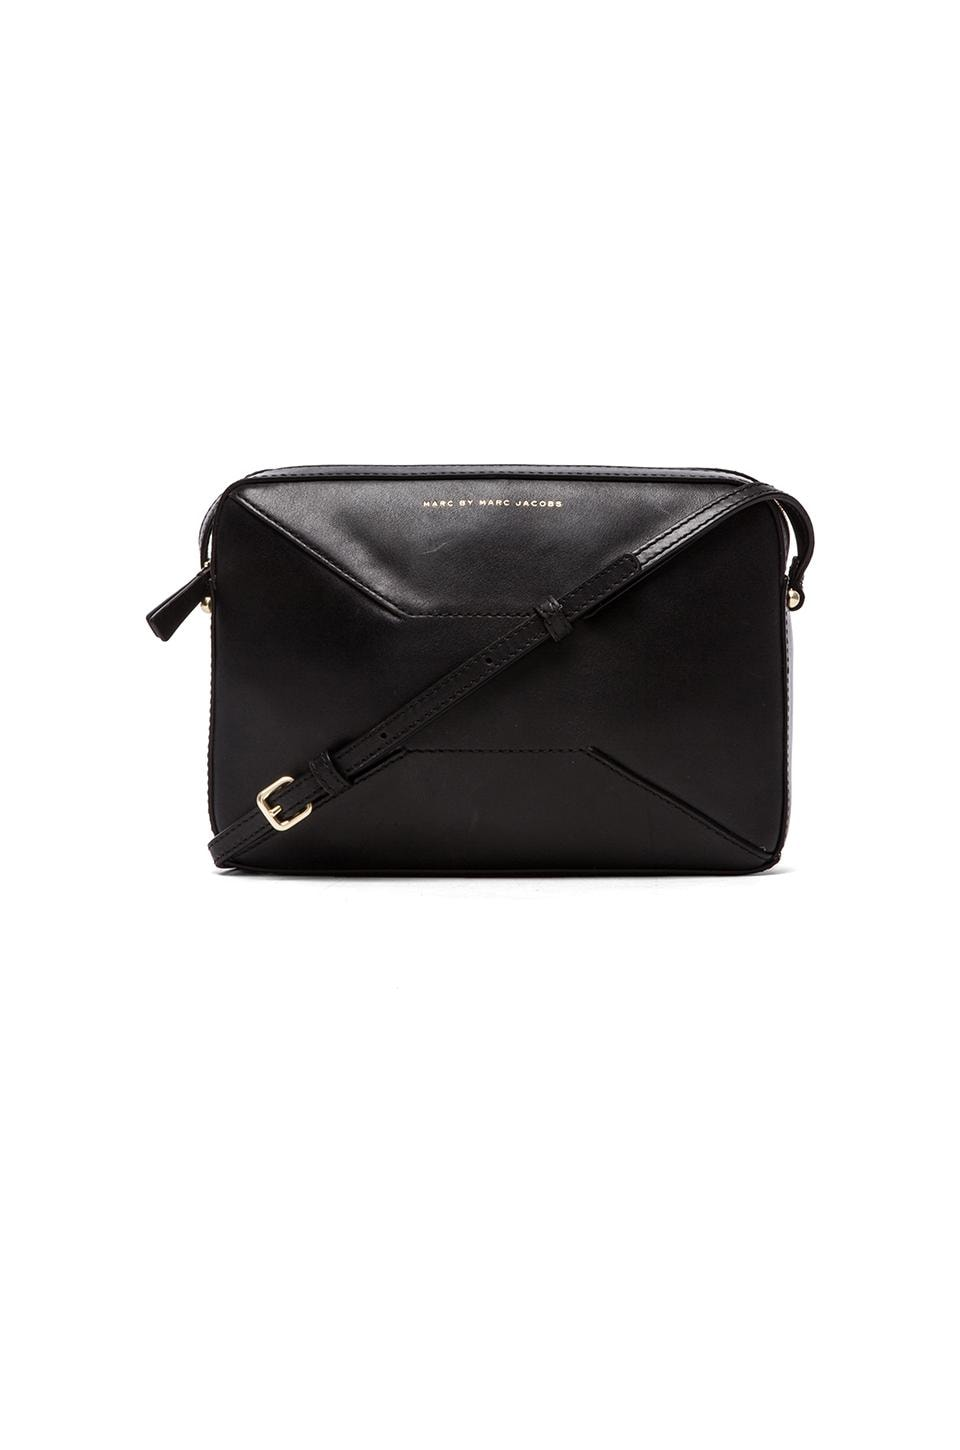 Marc by Marc Jacobs Hands Off Alex Crossbody in Black